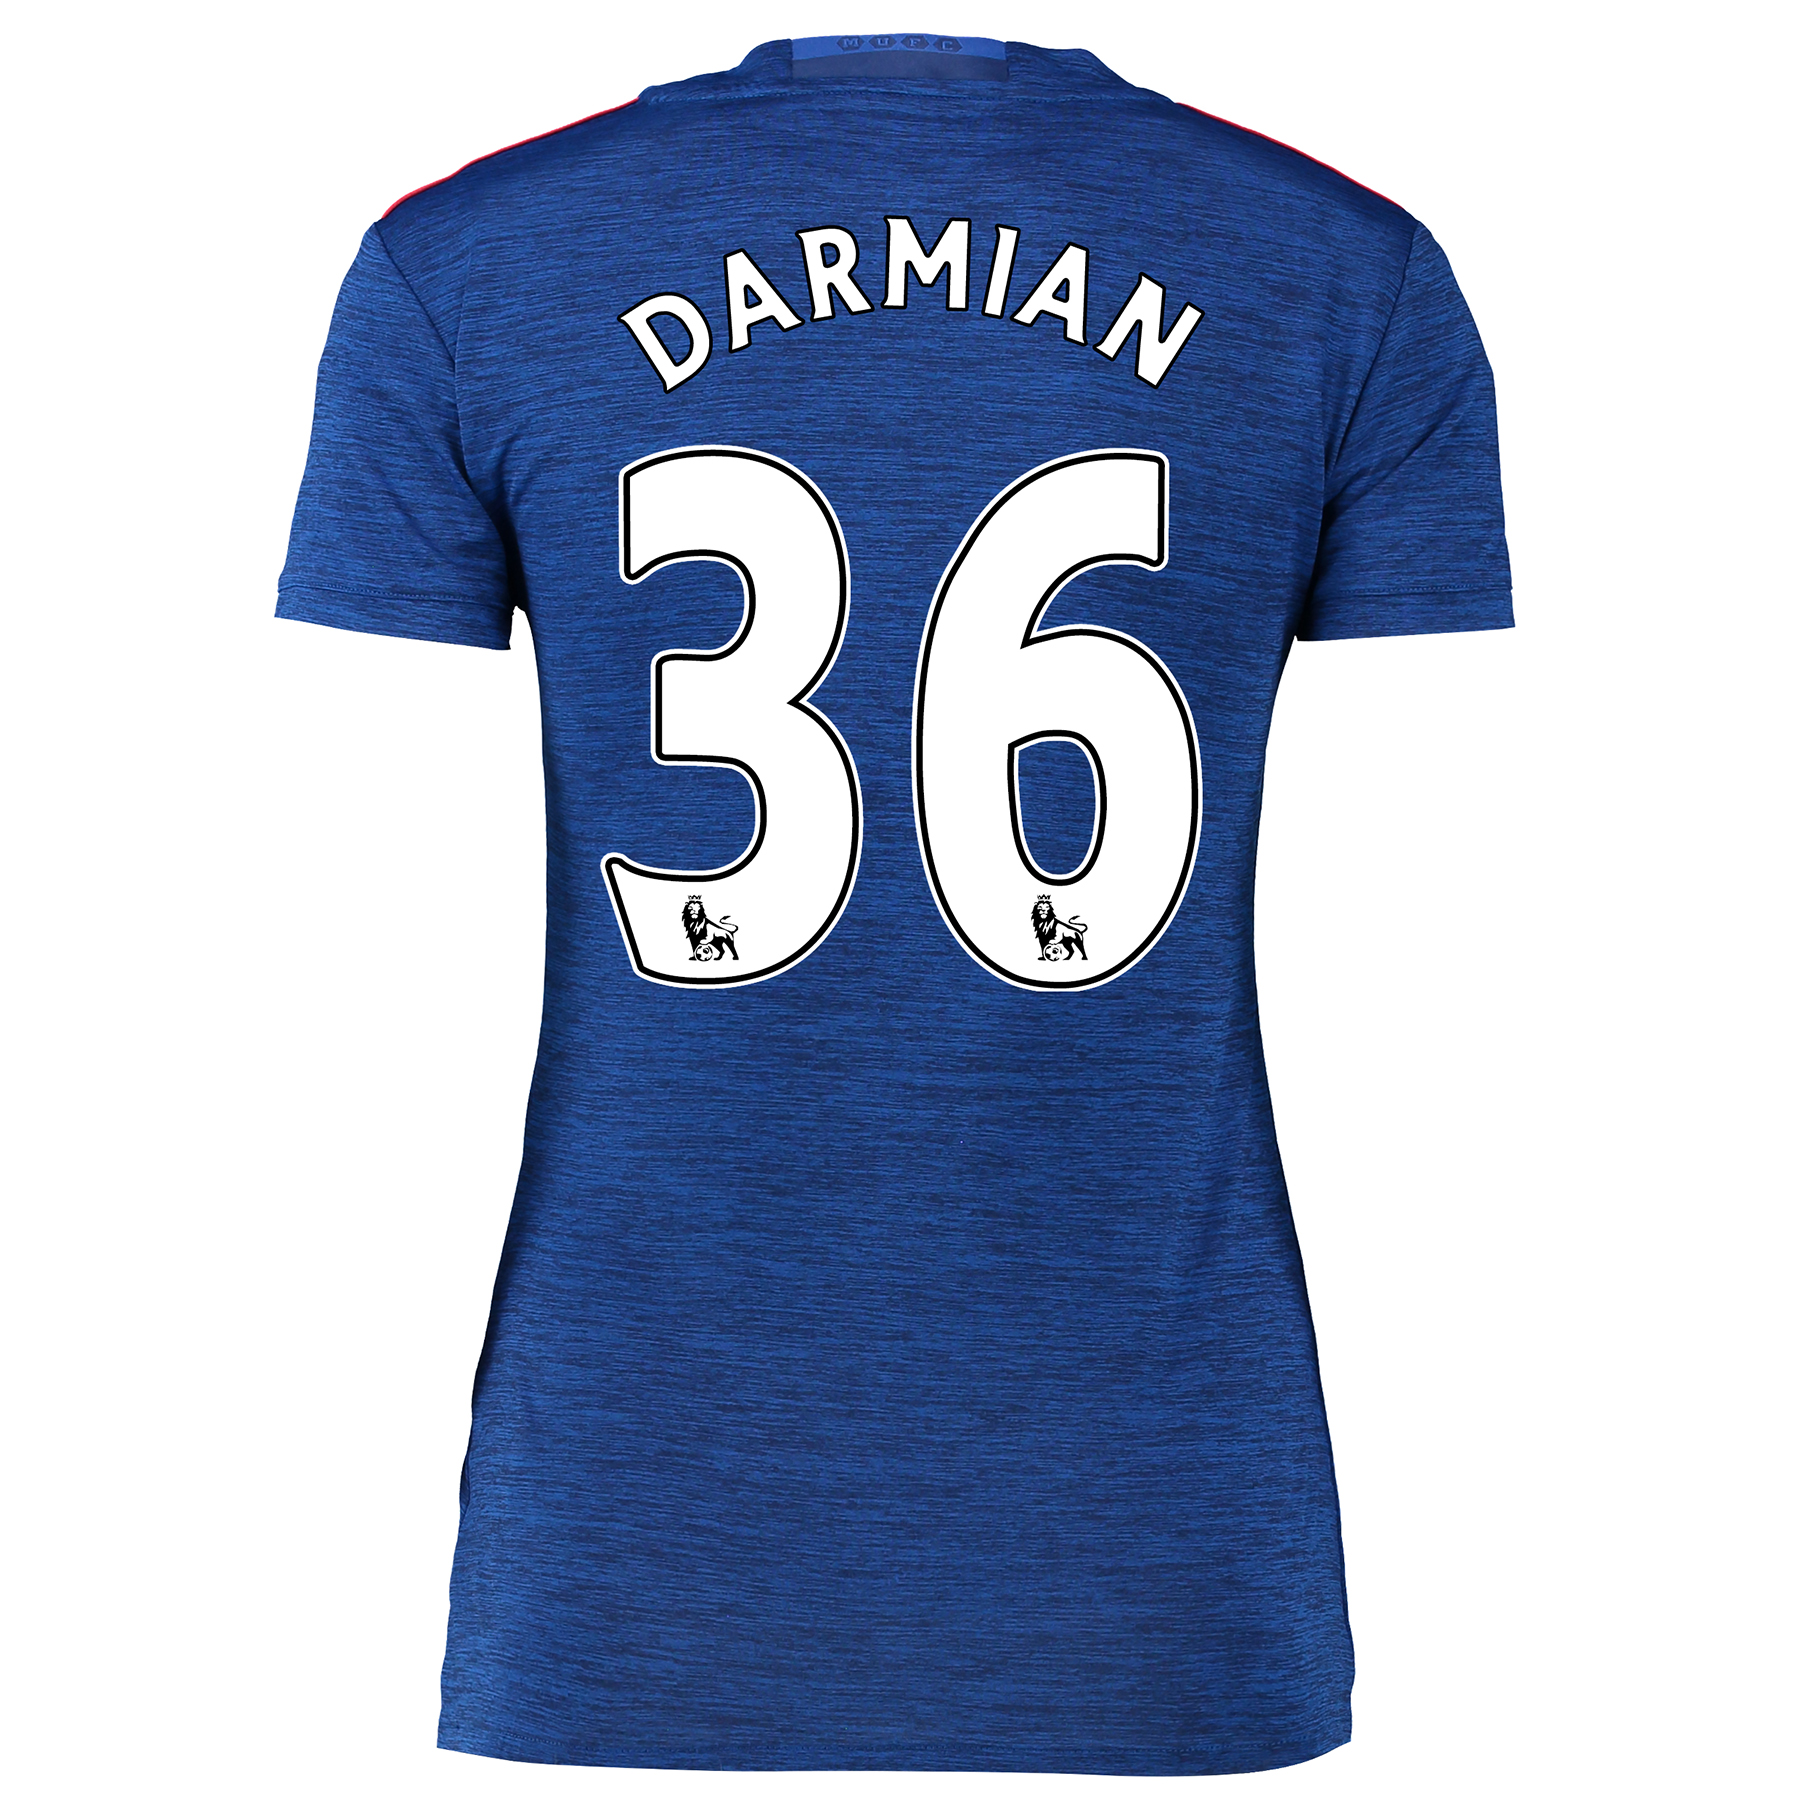 Manchester United Away Shirt 2016-17 - Womens with Darmian 36 printing